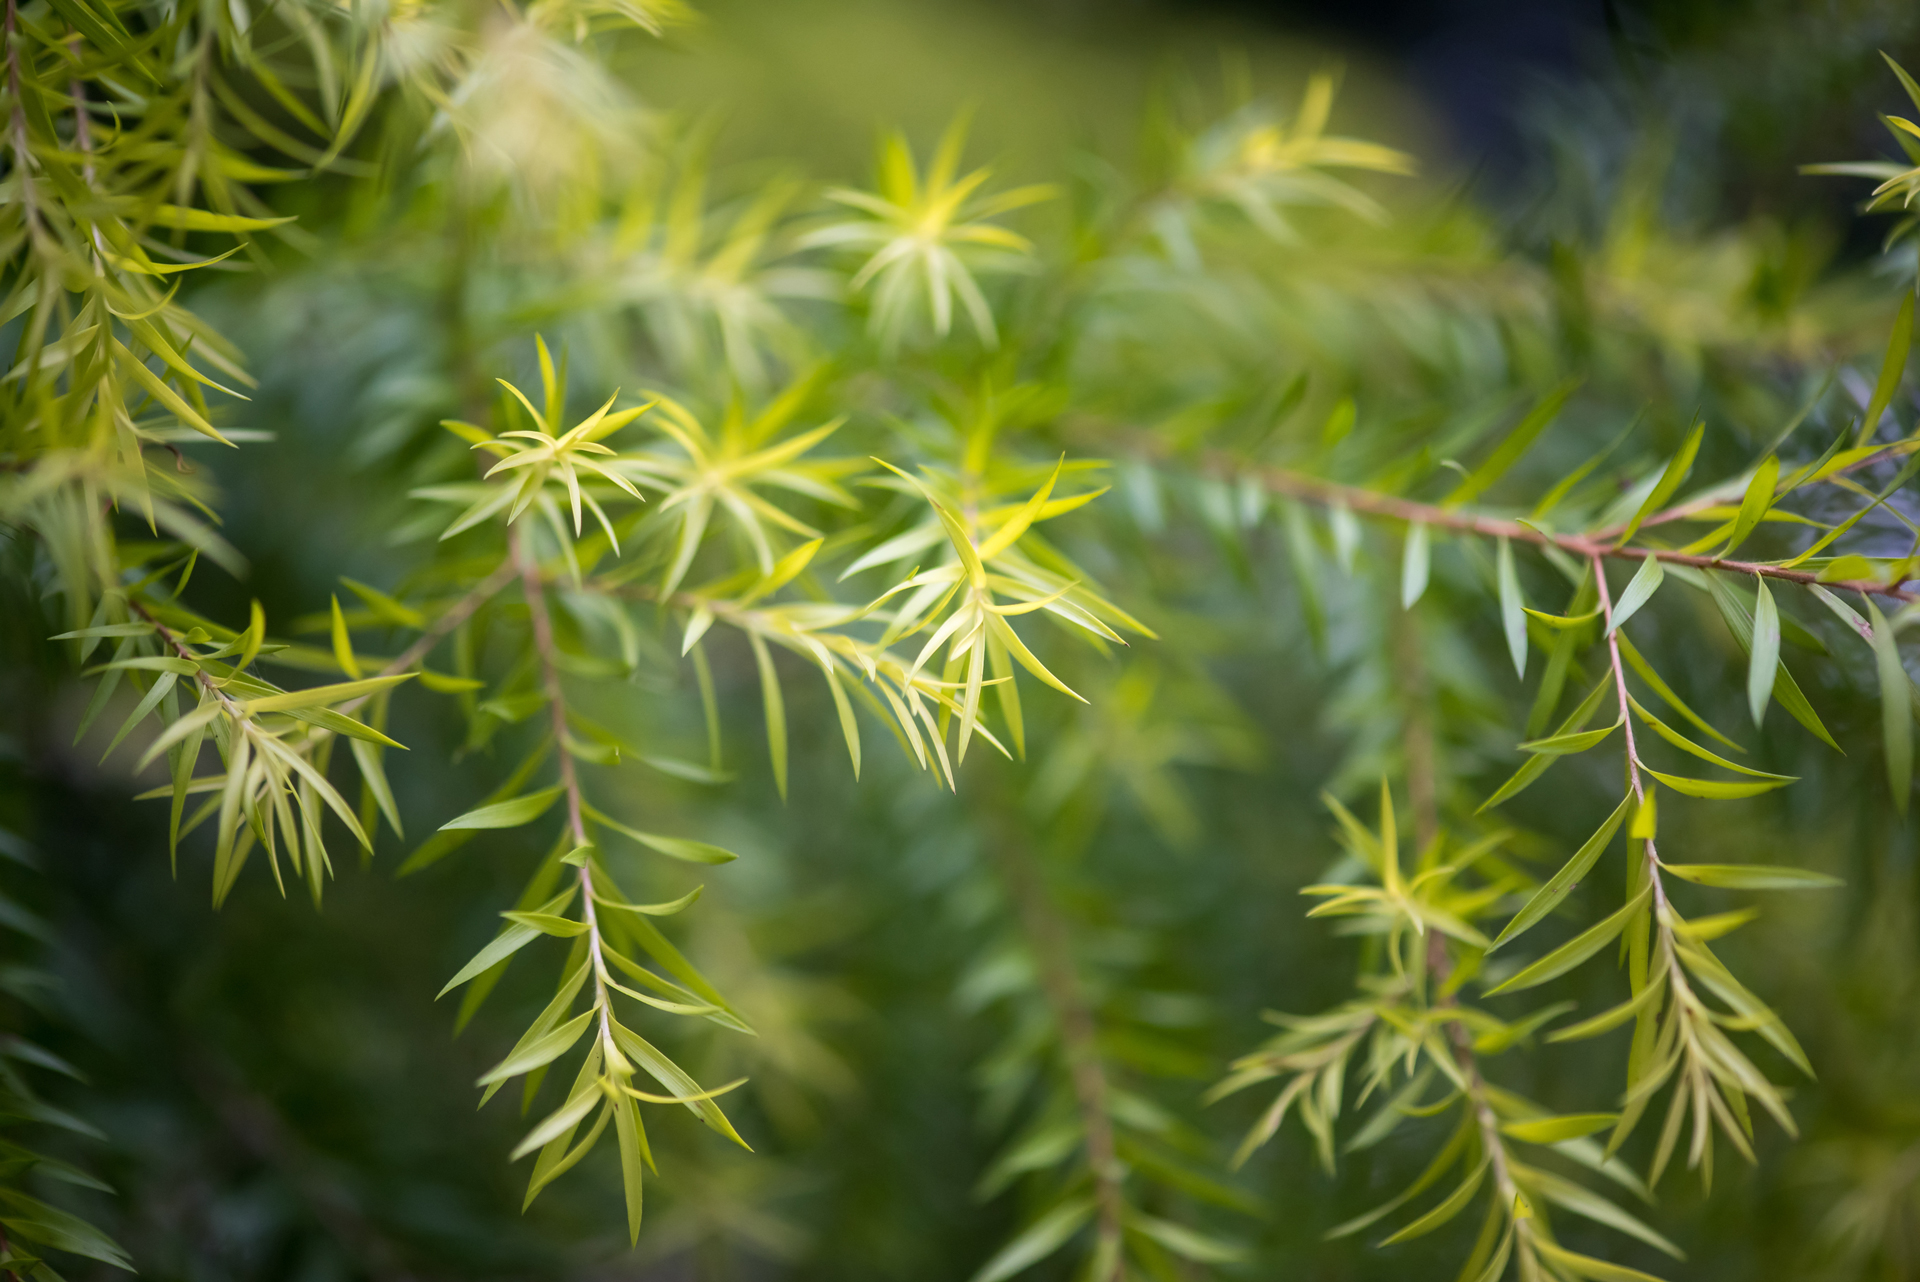 5 Tea Tree Essential Oil Diffuser Blends to Support The Immune System